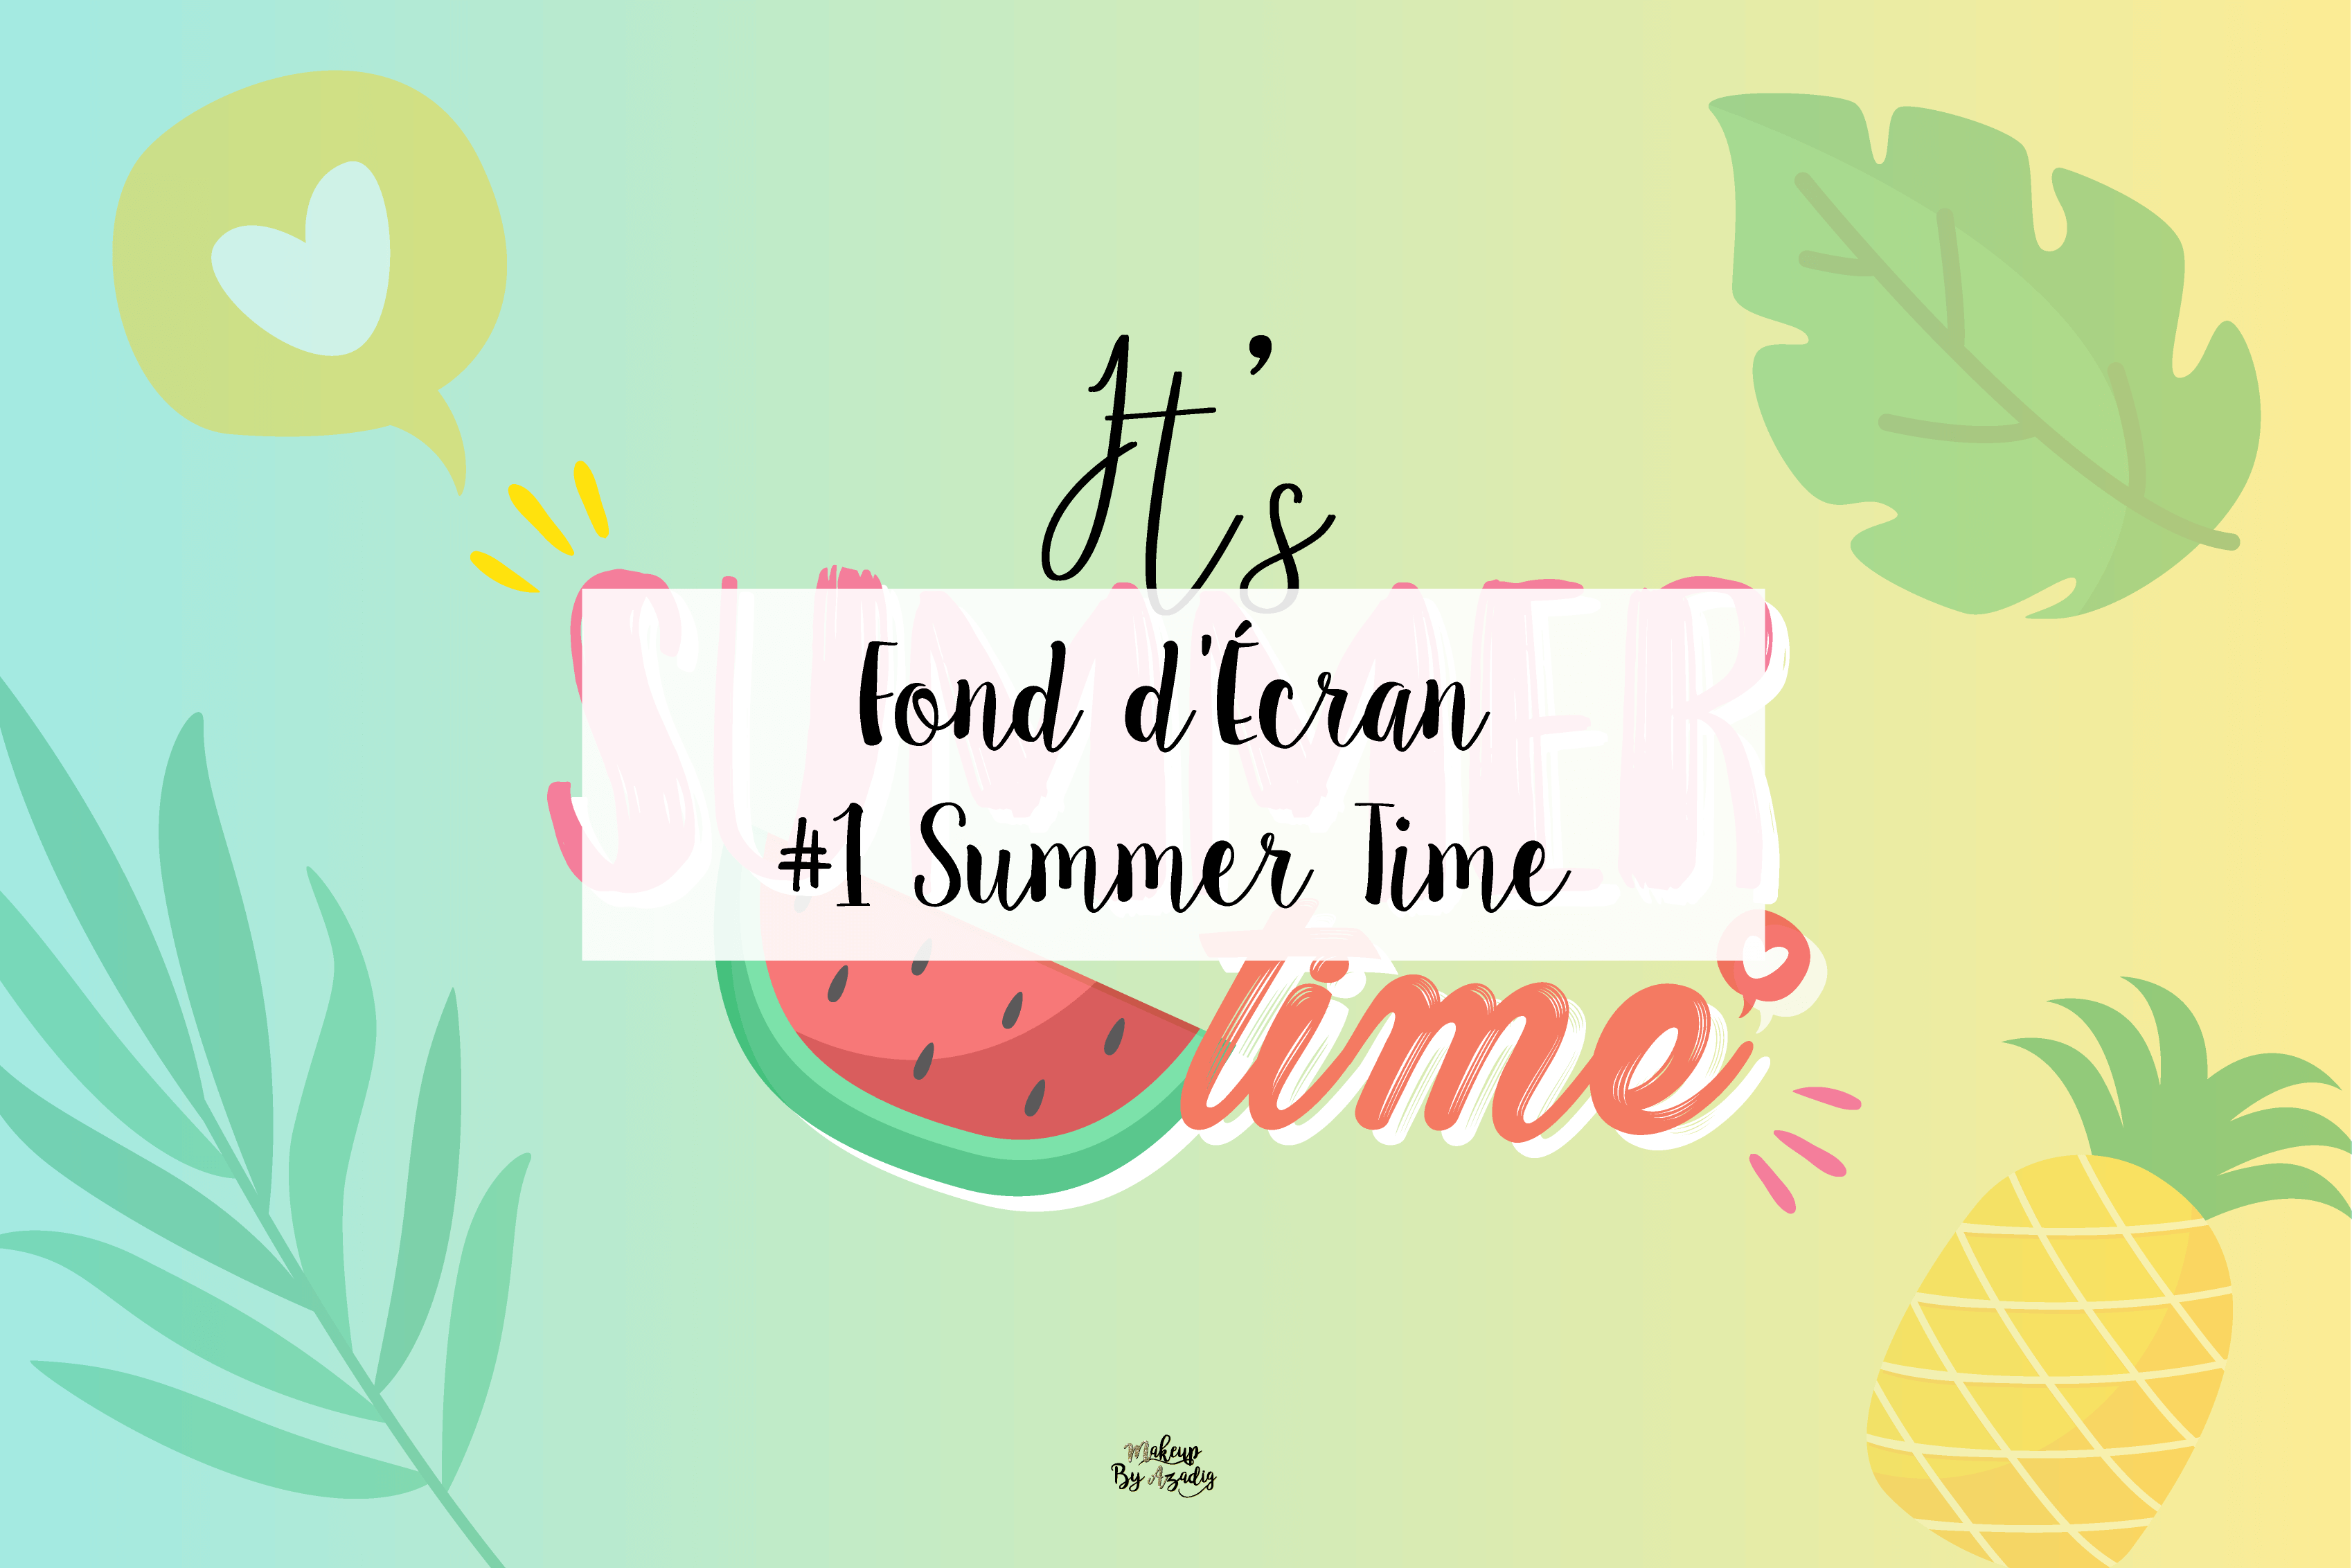 fond-decran-wallpaper-summer-time-ordinateur-iphone-samsung-mac-macbook-imac-pc-makeupbyazadig-tendance